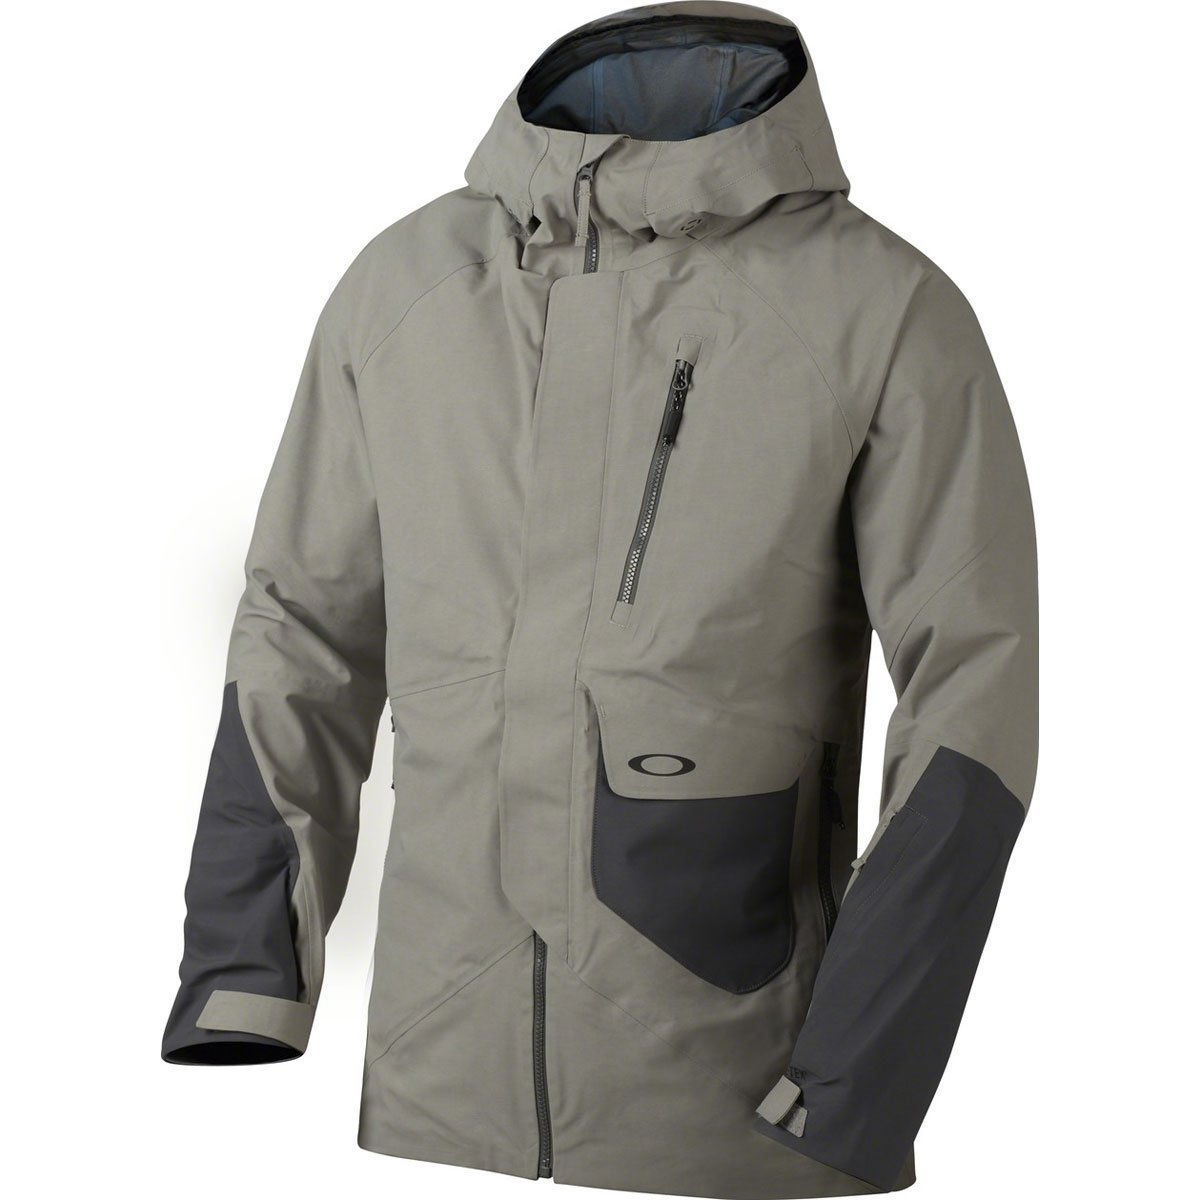 Oakley Men's Hourglass 3 L Gore Jacket, X-Large, Oxide by Oakley